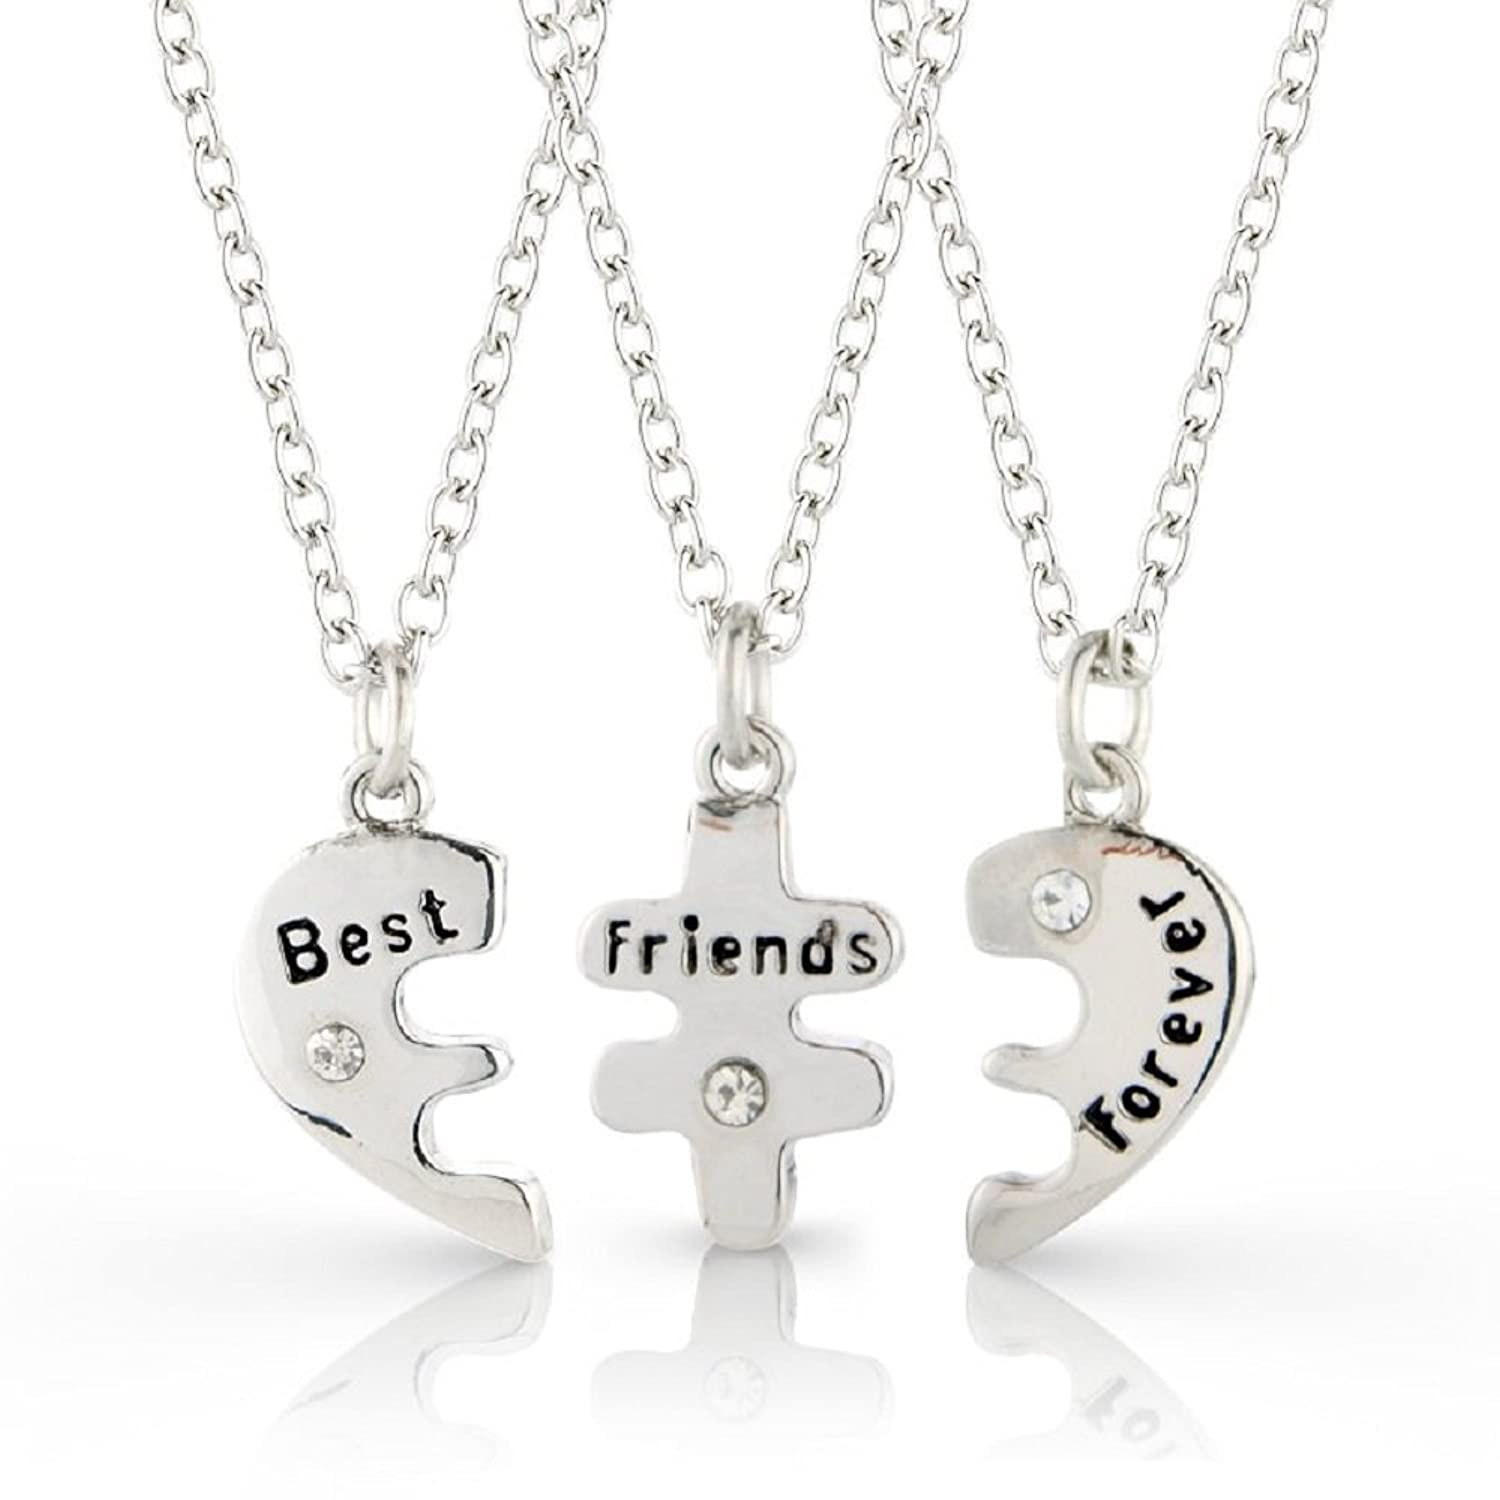 scales s friends claire mermaid best pin heart us pendant lockets friendship necklaces